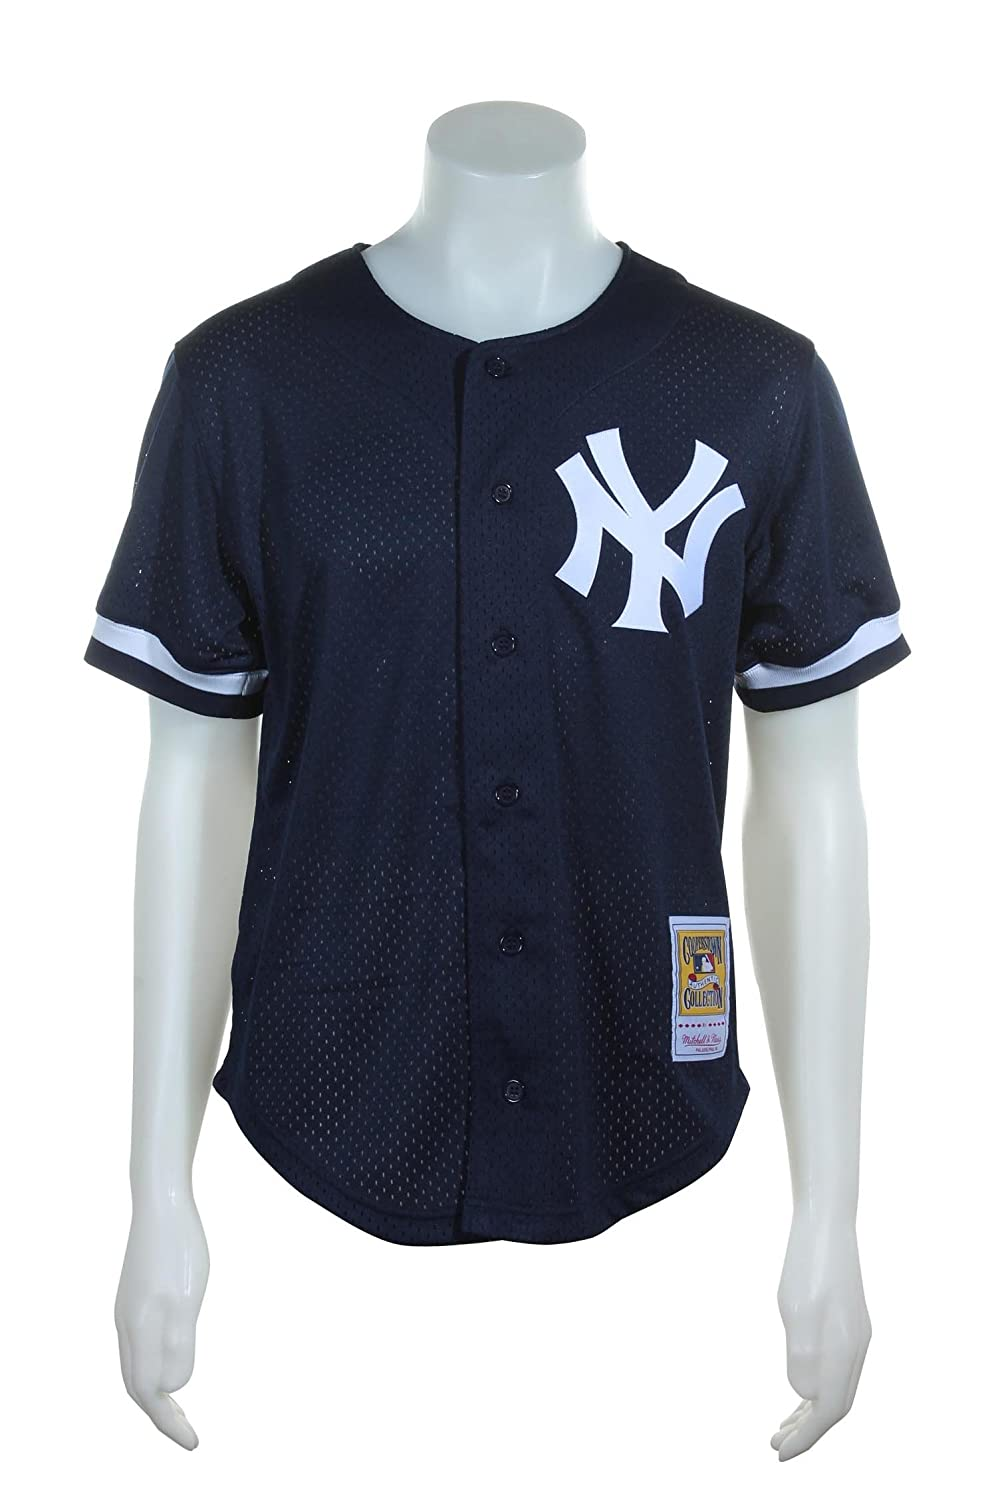 timeless design 979ef 16d2a Amazon.com : New York Yankees Mlb Mitchell And Ness #51 ...